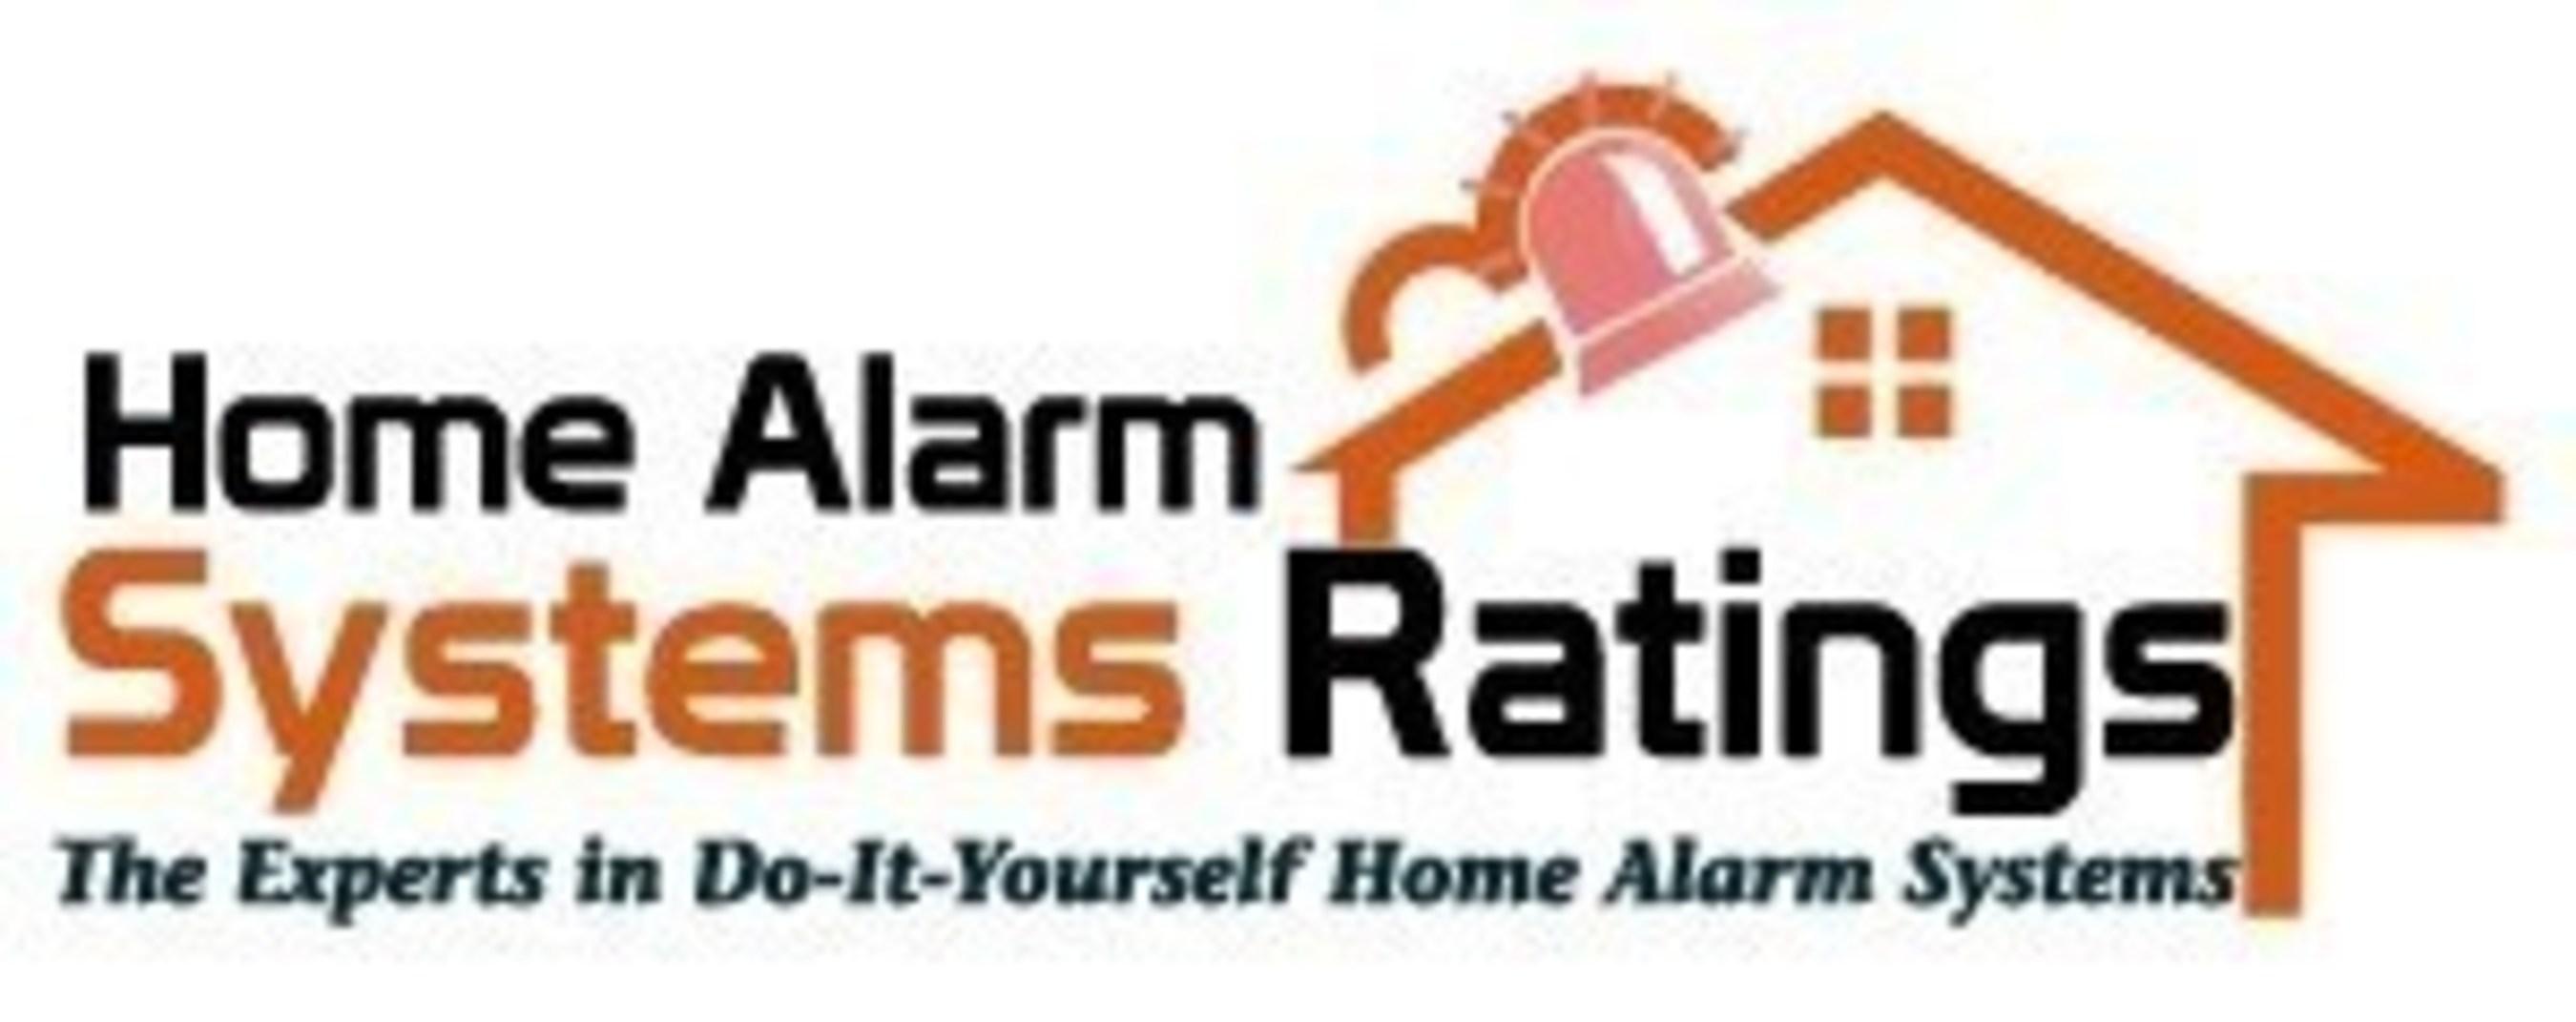 Best Home Alarm System Reviews now Available on HomeAlarmSystemsRatings.com